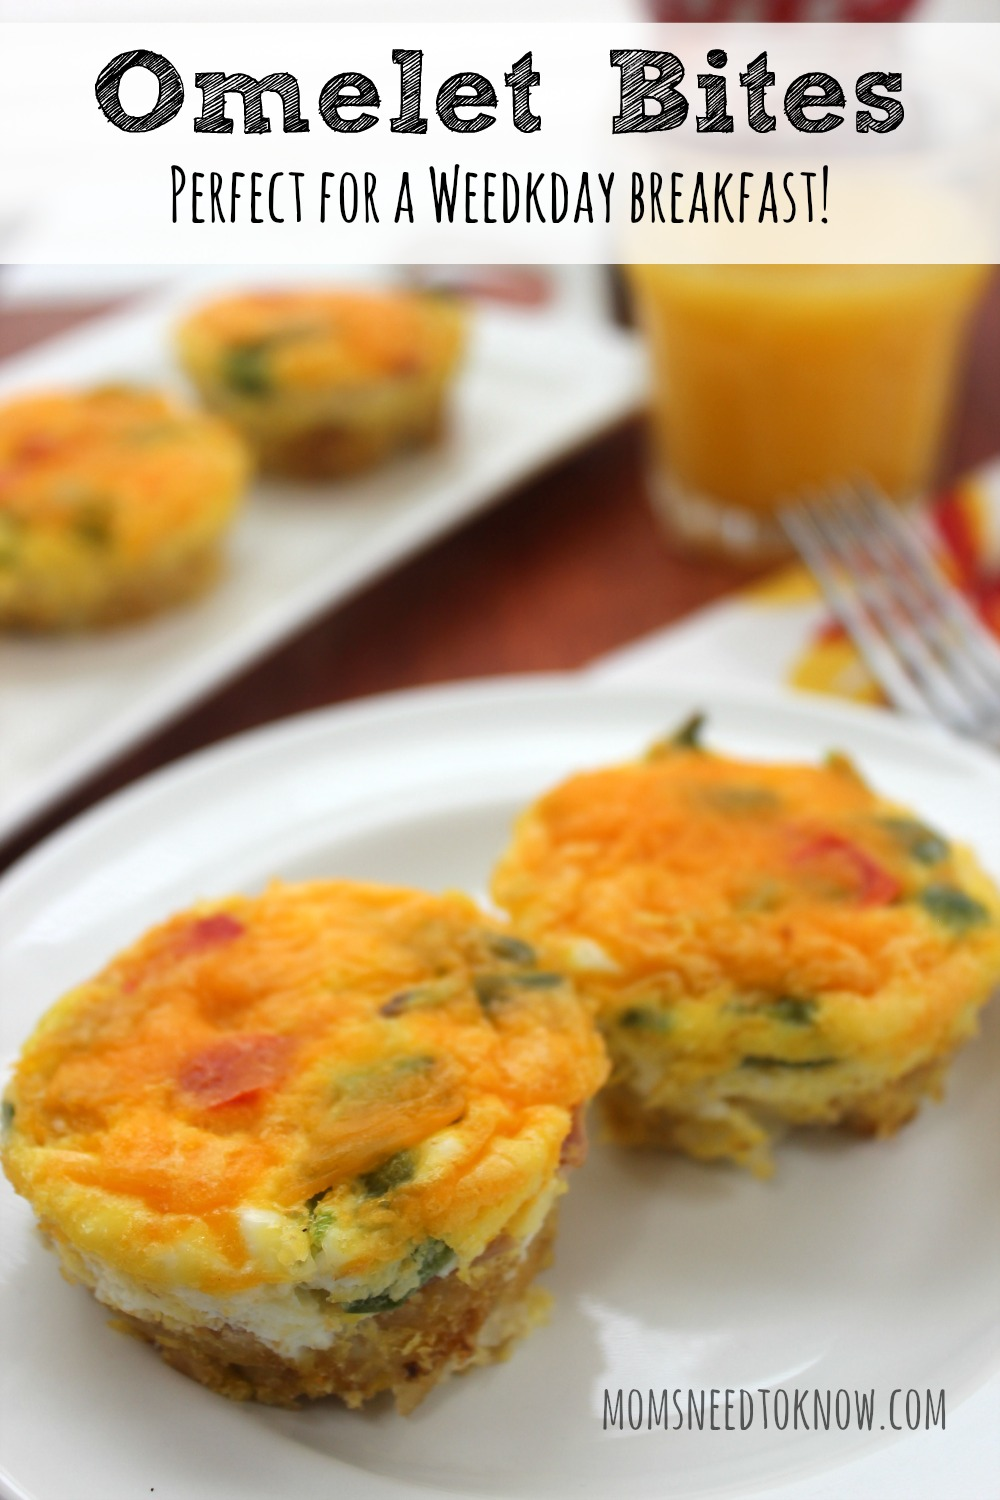 The reason I love this bite size egg omelet recipe? Everything is done at the same time and the entire family can sit down together and eat!